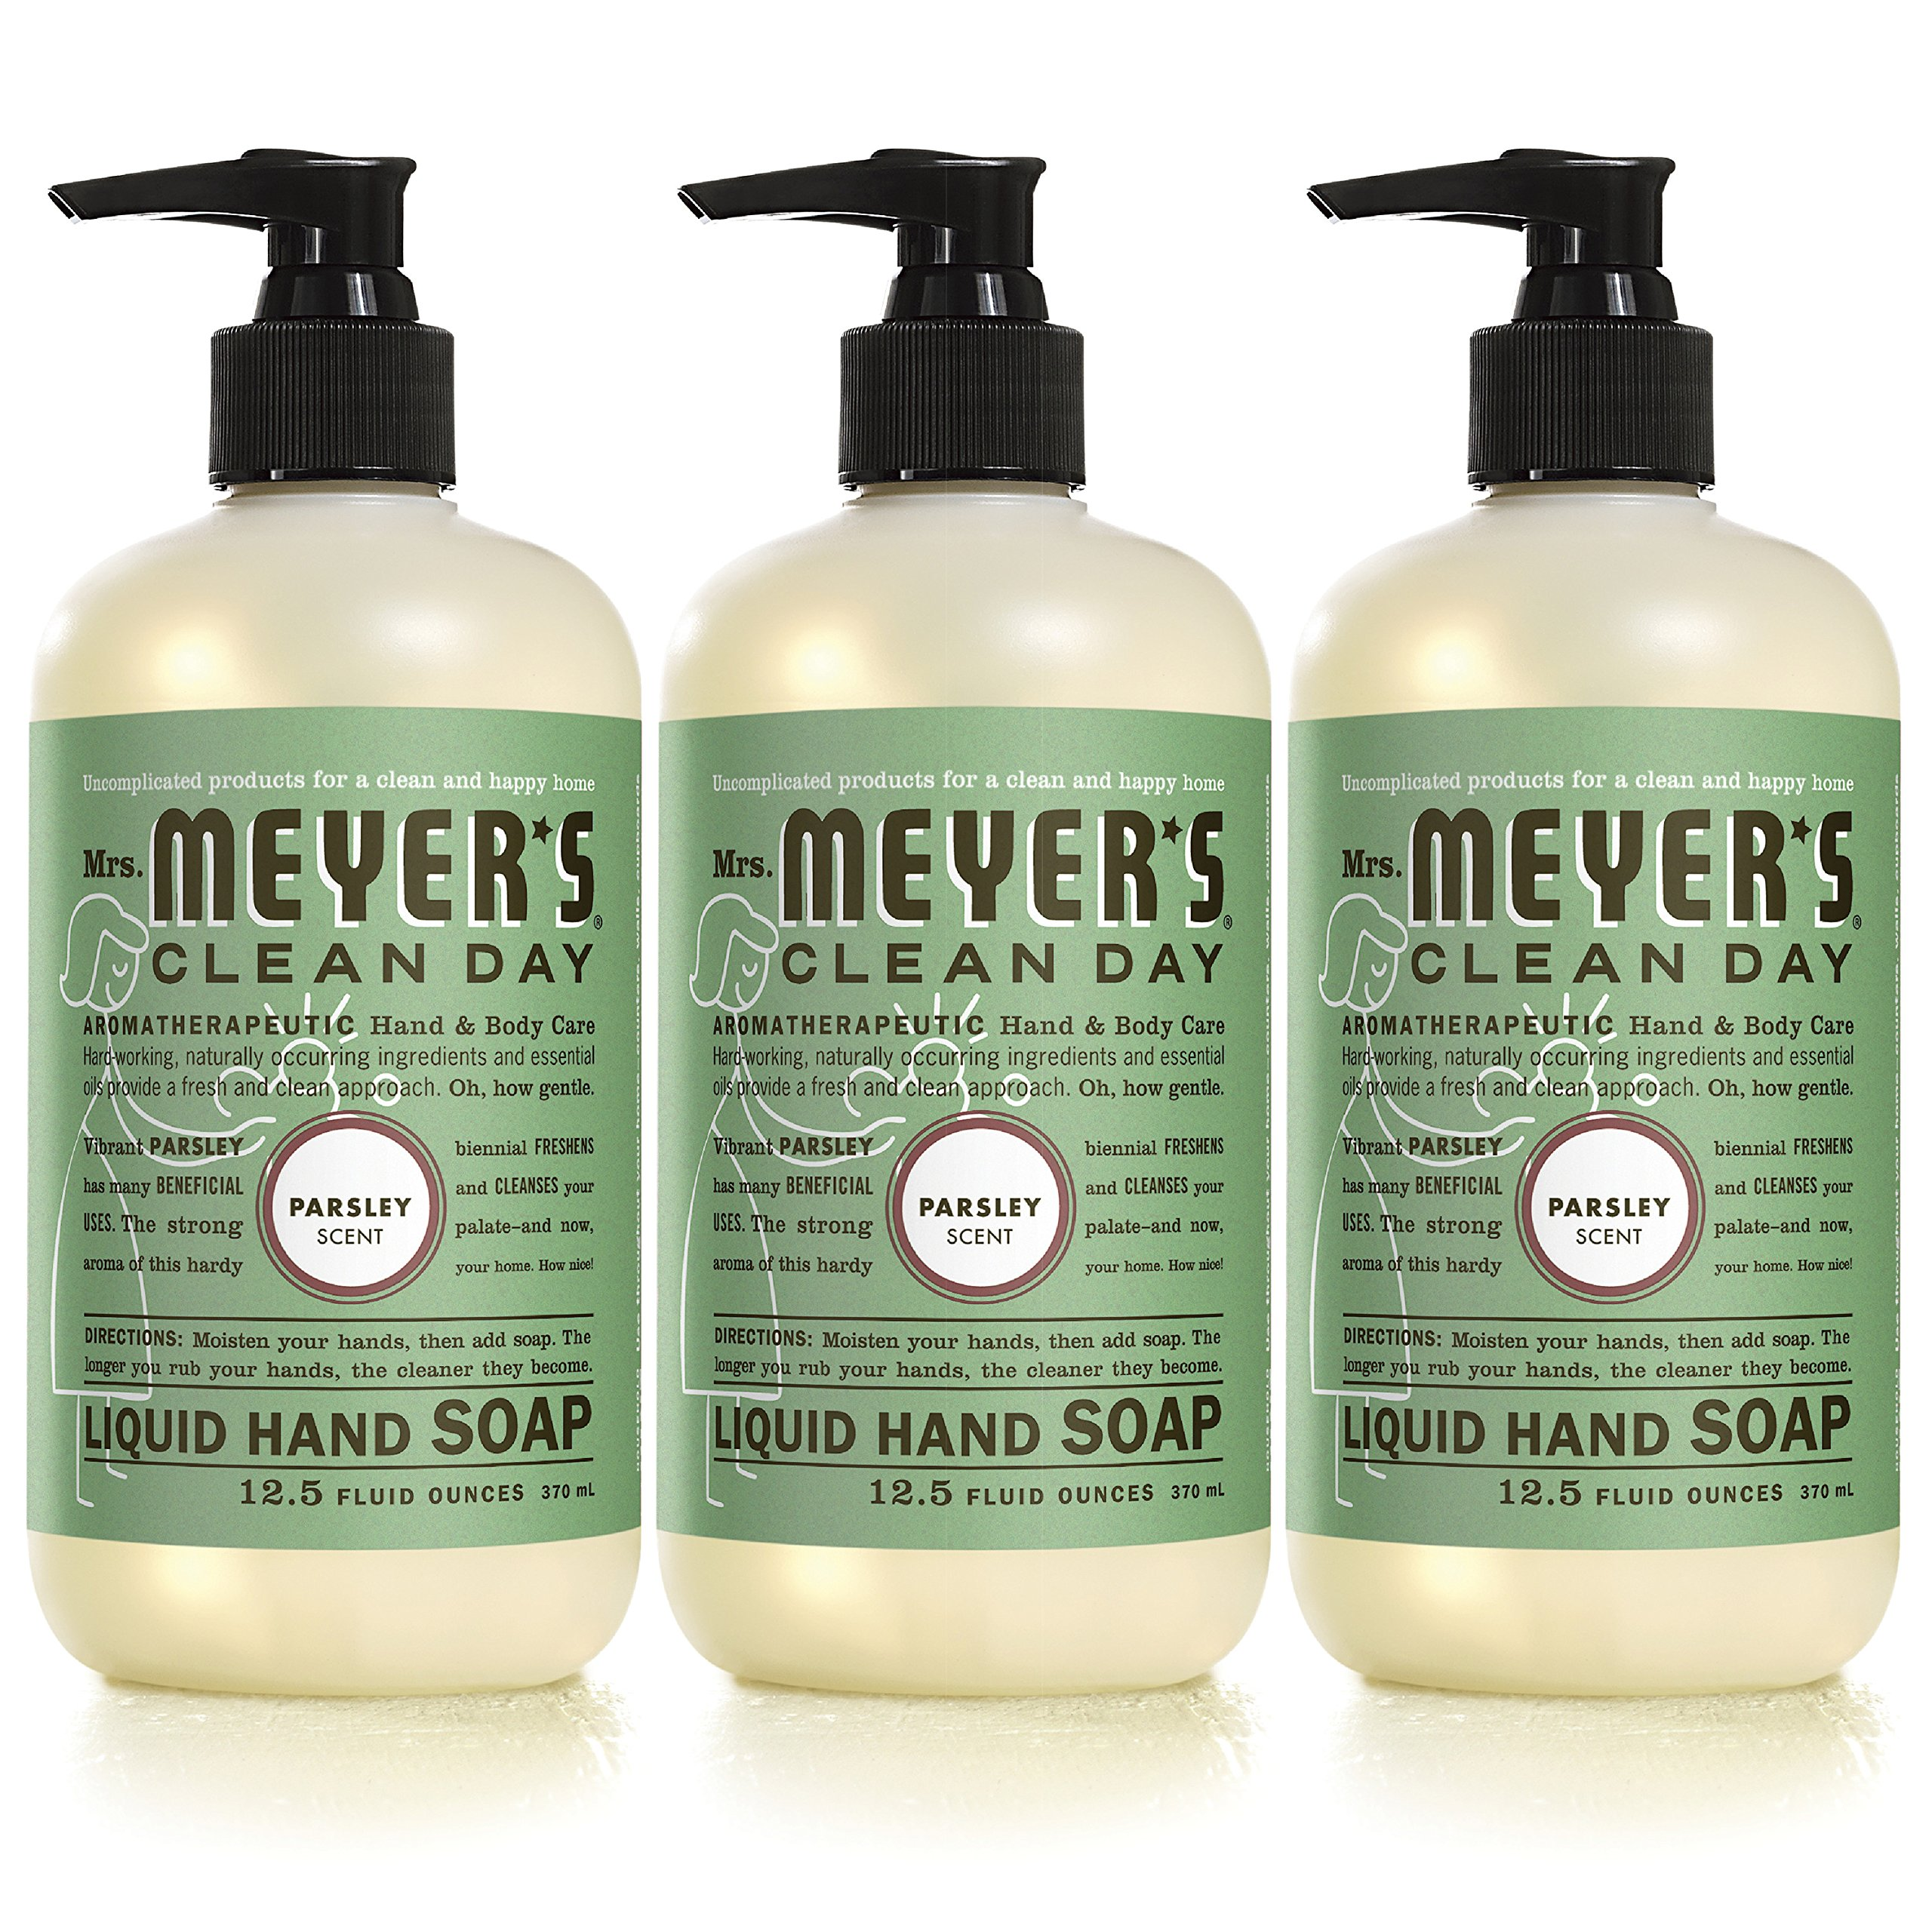 Mrs Meyers Parsley Liquid Hand Soap,12.5 fl oz (Pack of 3) by Mrs. Meyer's Clean Day